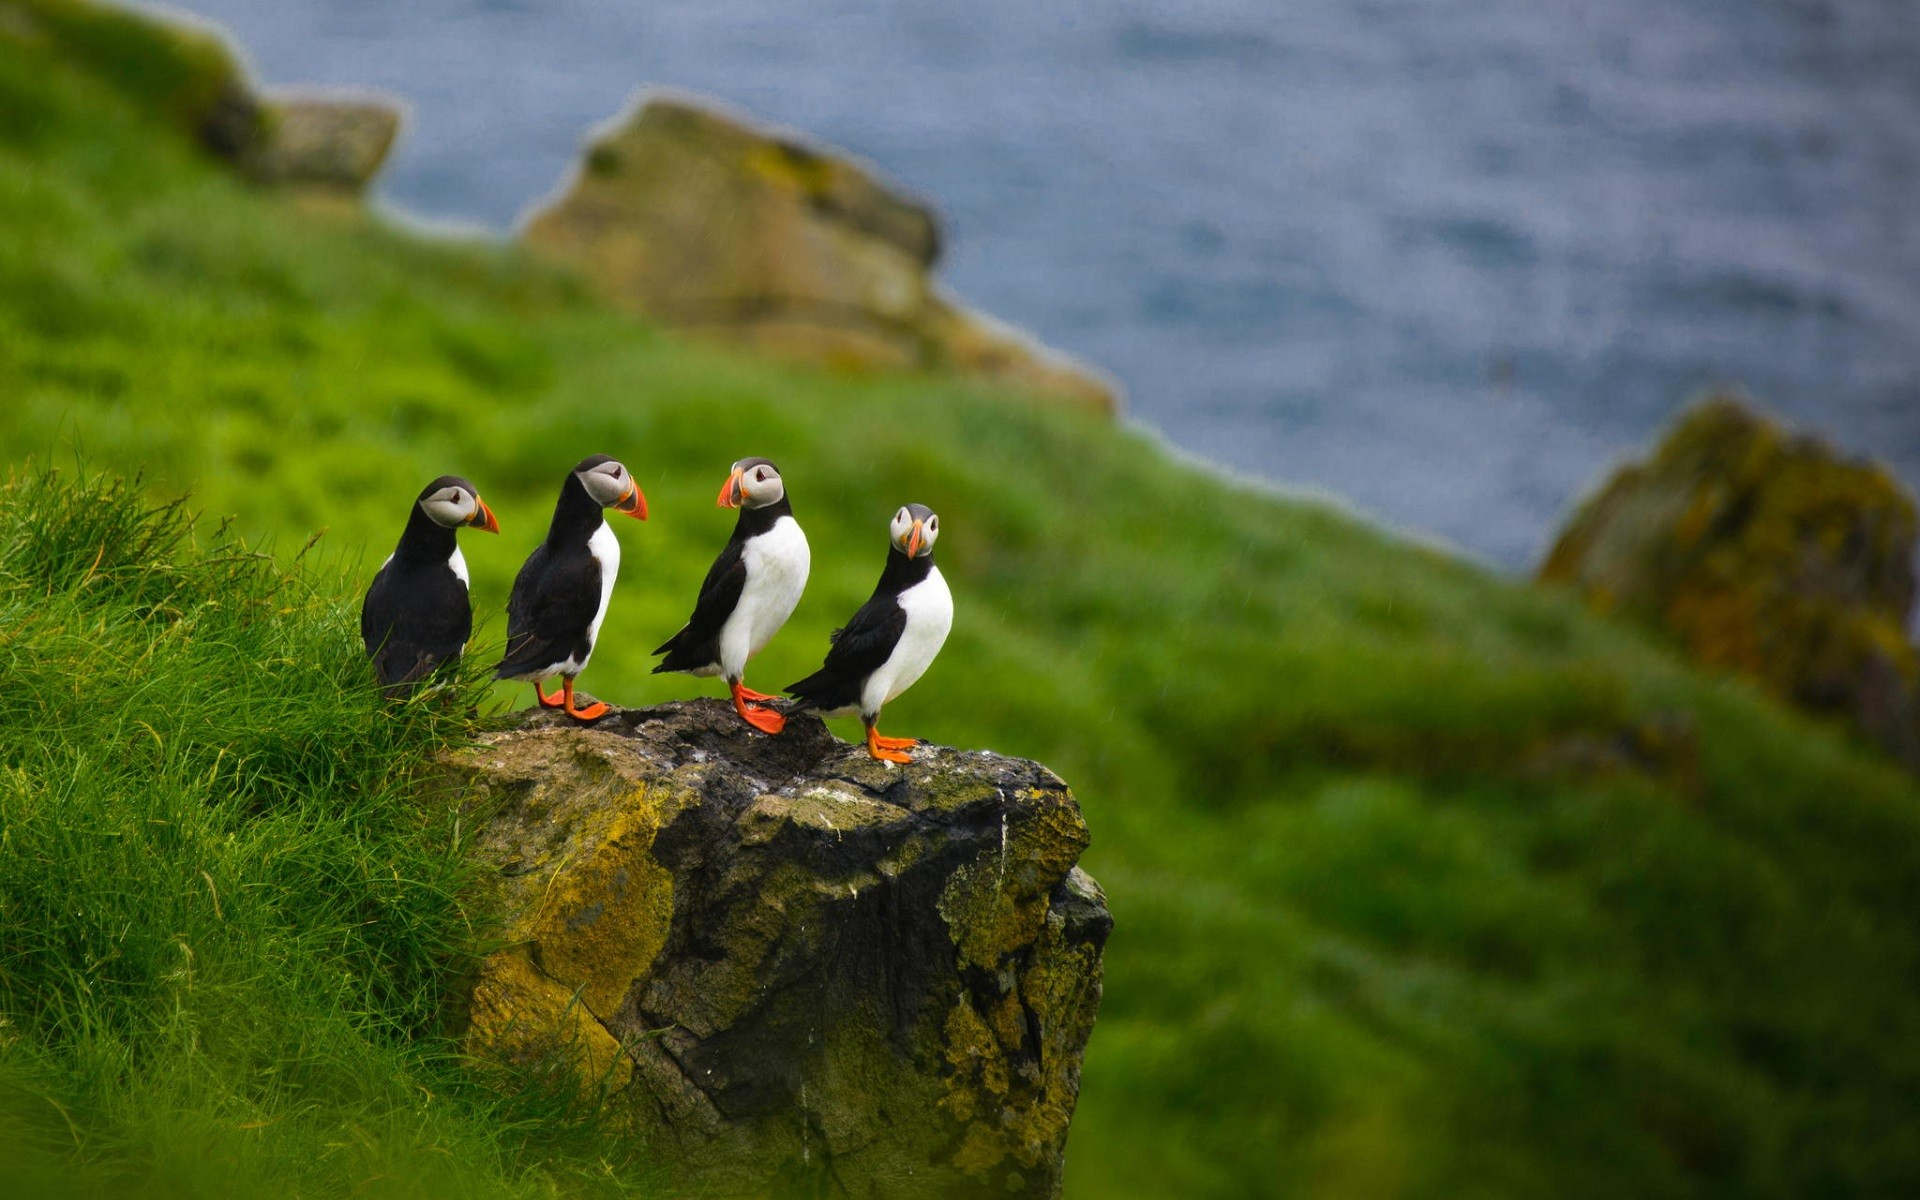 puffins  hd birds  4k wallpapers  images  backgrounds  photos and pictures